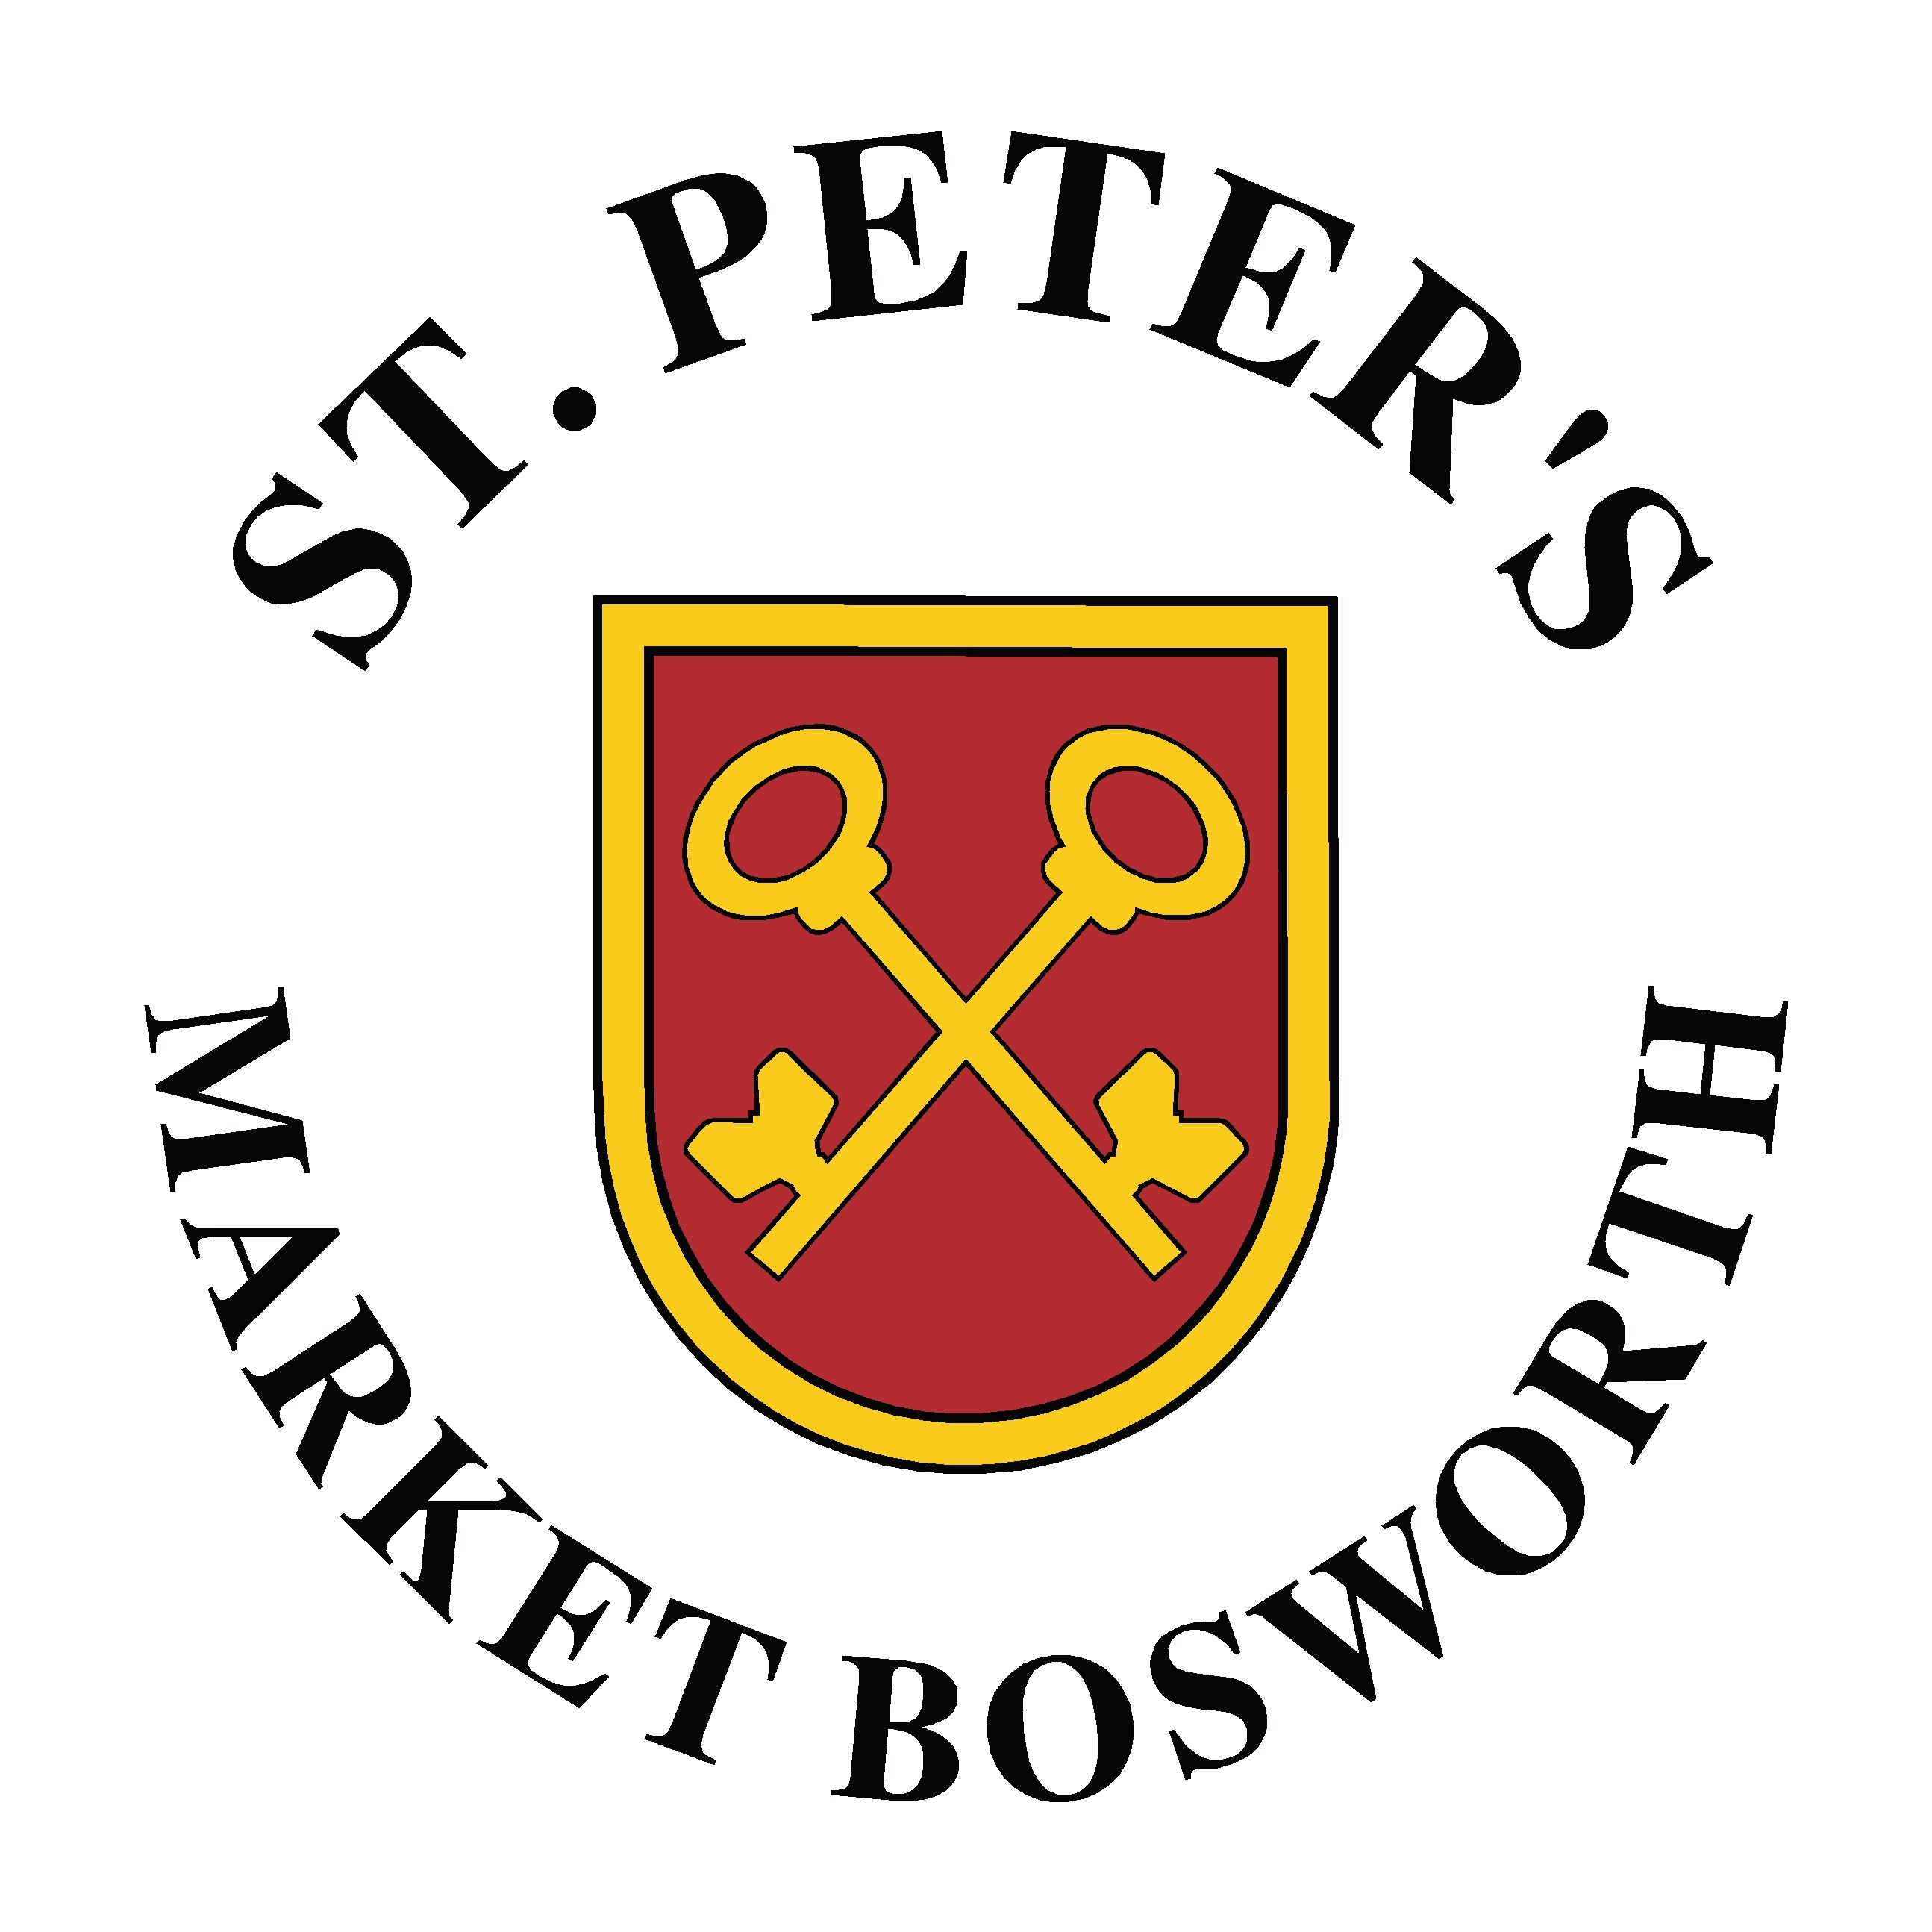 st peters badge logo in colour.jpg